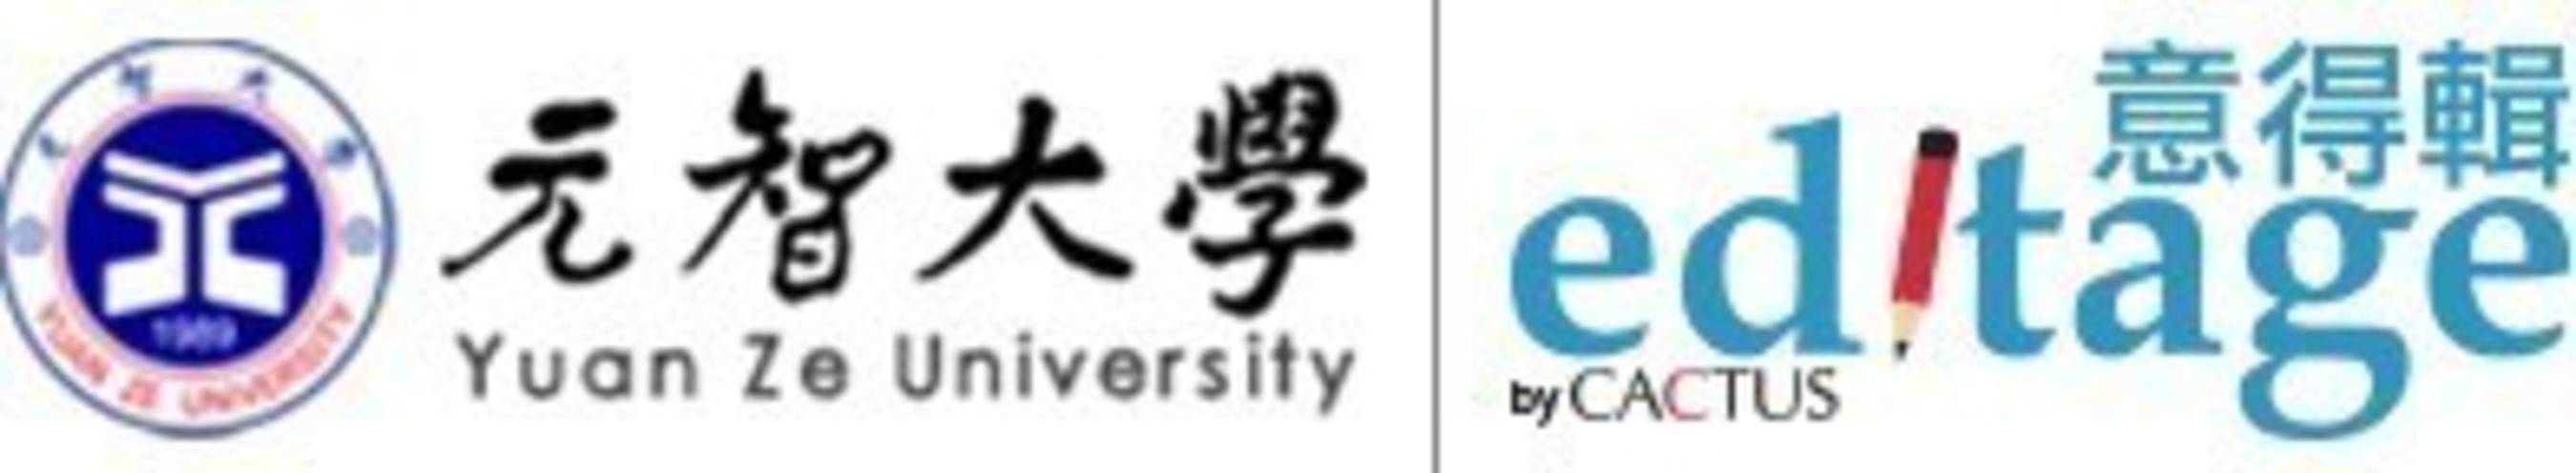 Editage launches a new co-branded website with Yuan Ze University